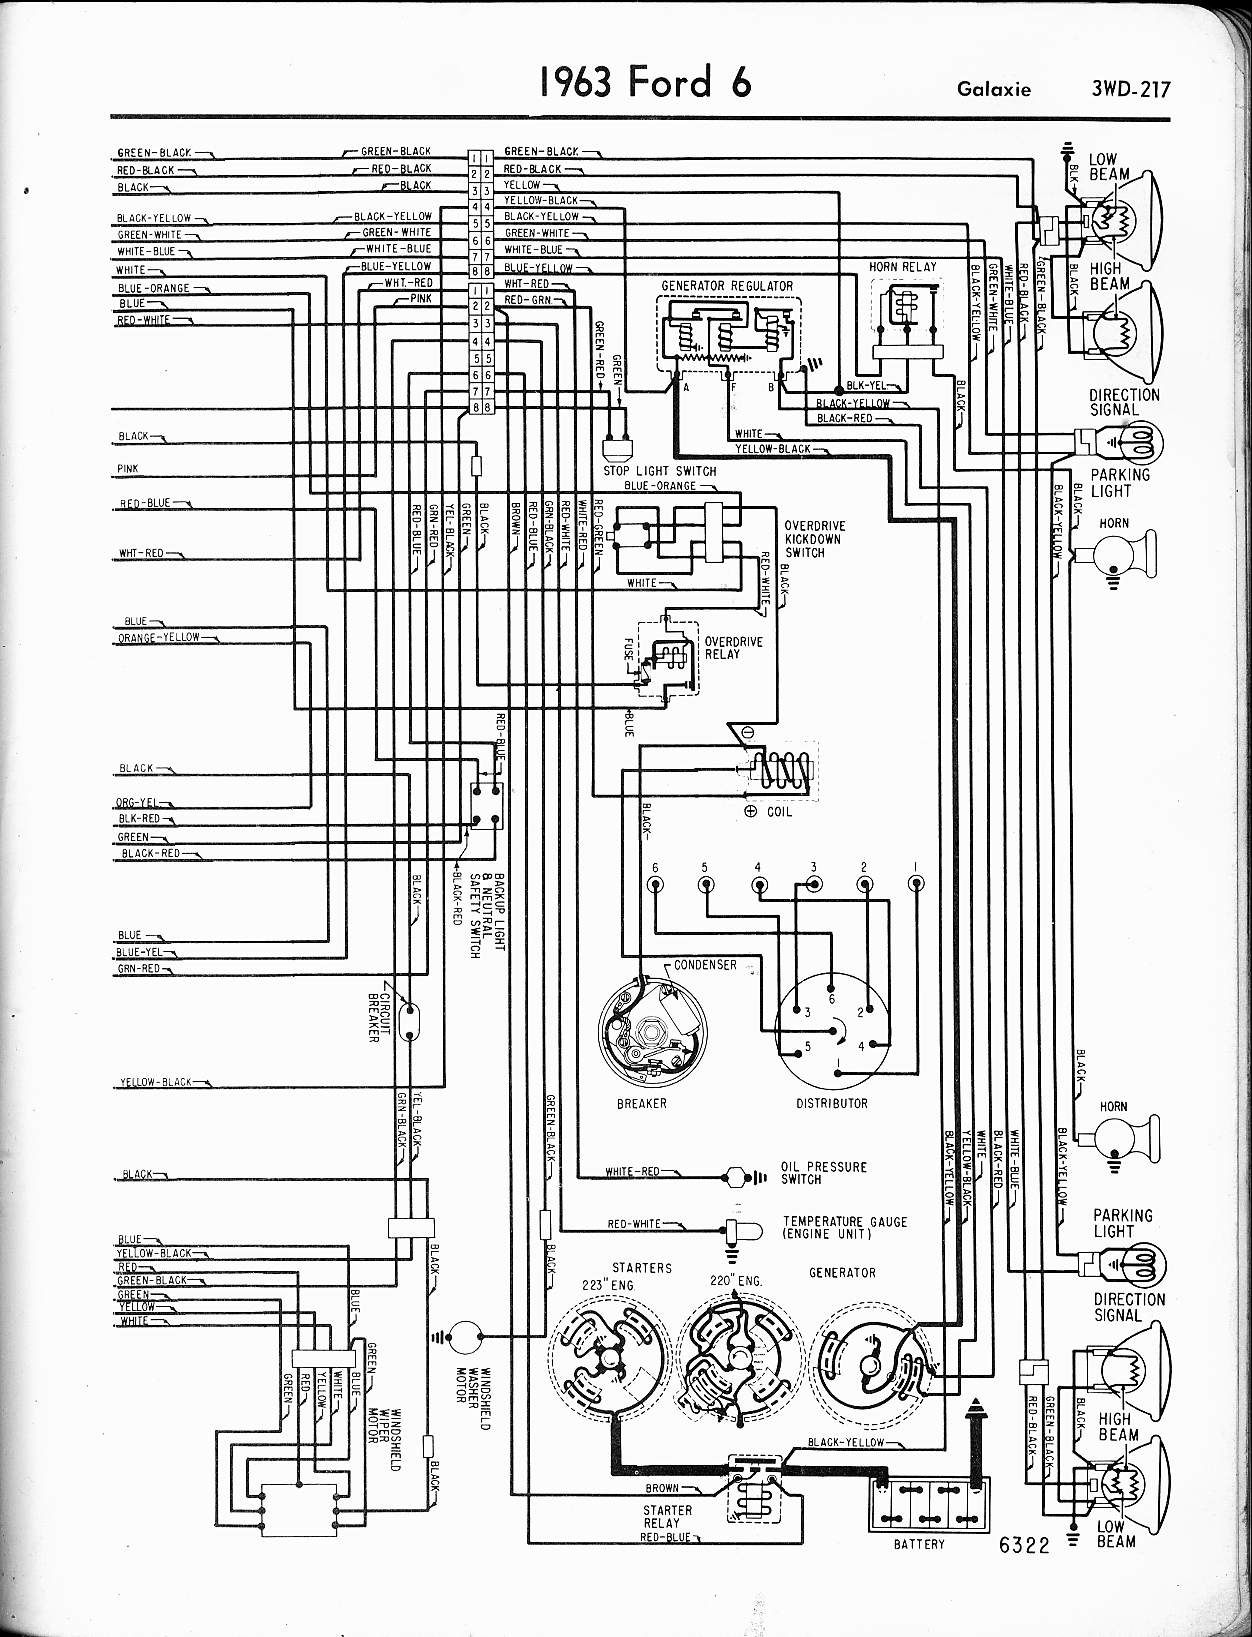 63 Fairlane Wiring Diagram Images Free Download 1963 Ford Falcon